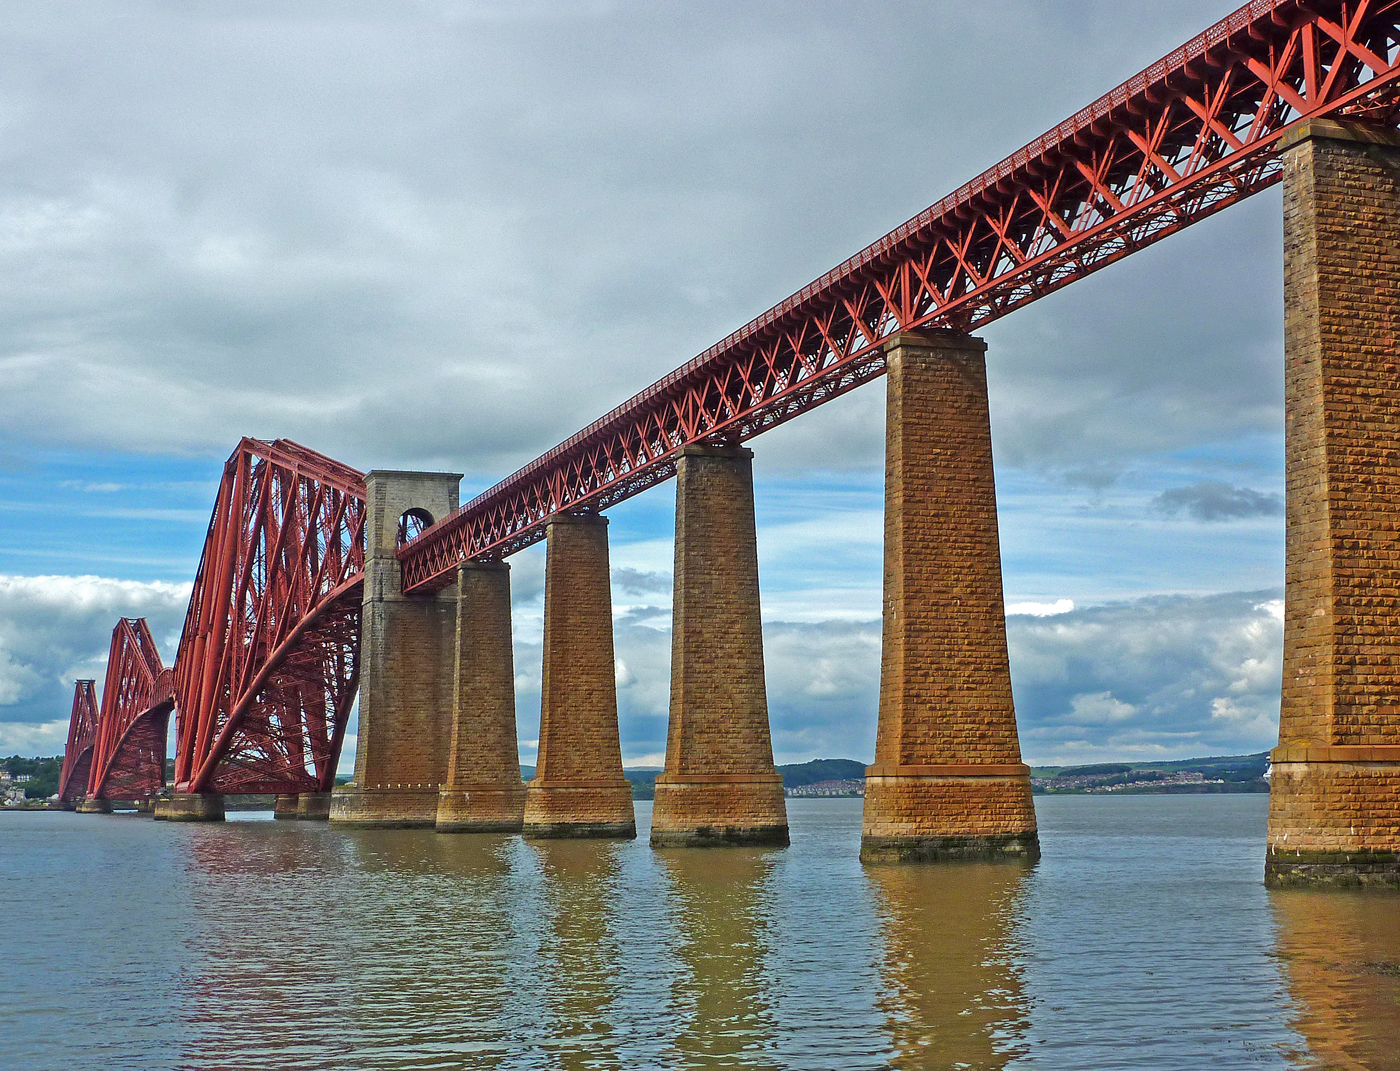 THE FORTH BRIDGE by Jim Chown